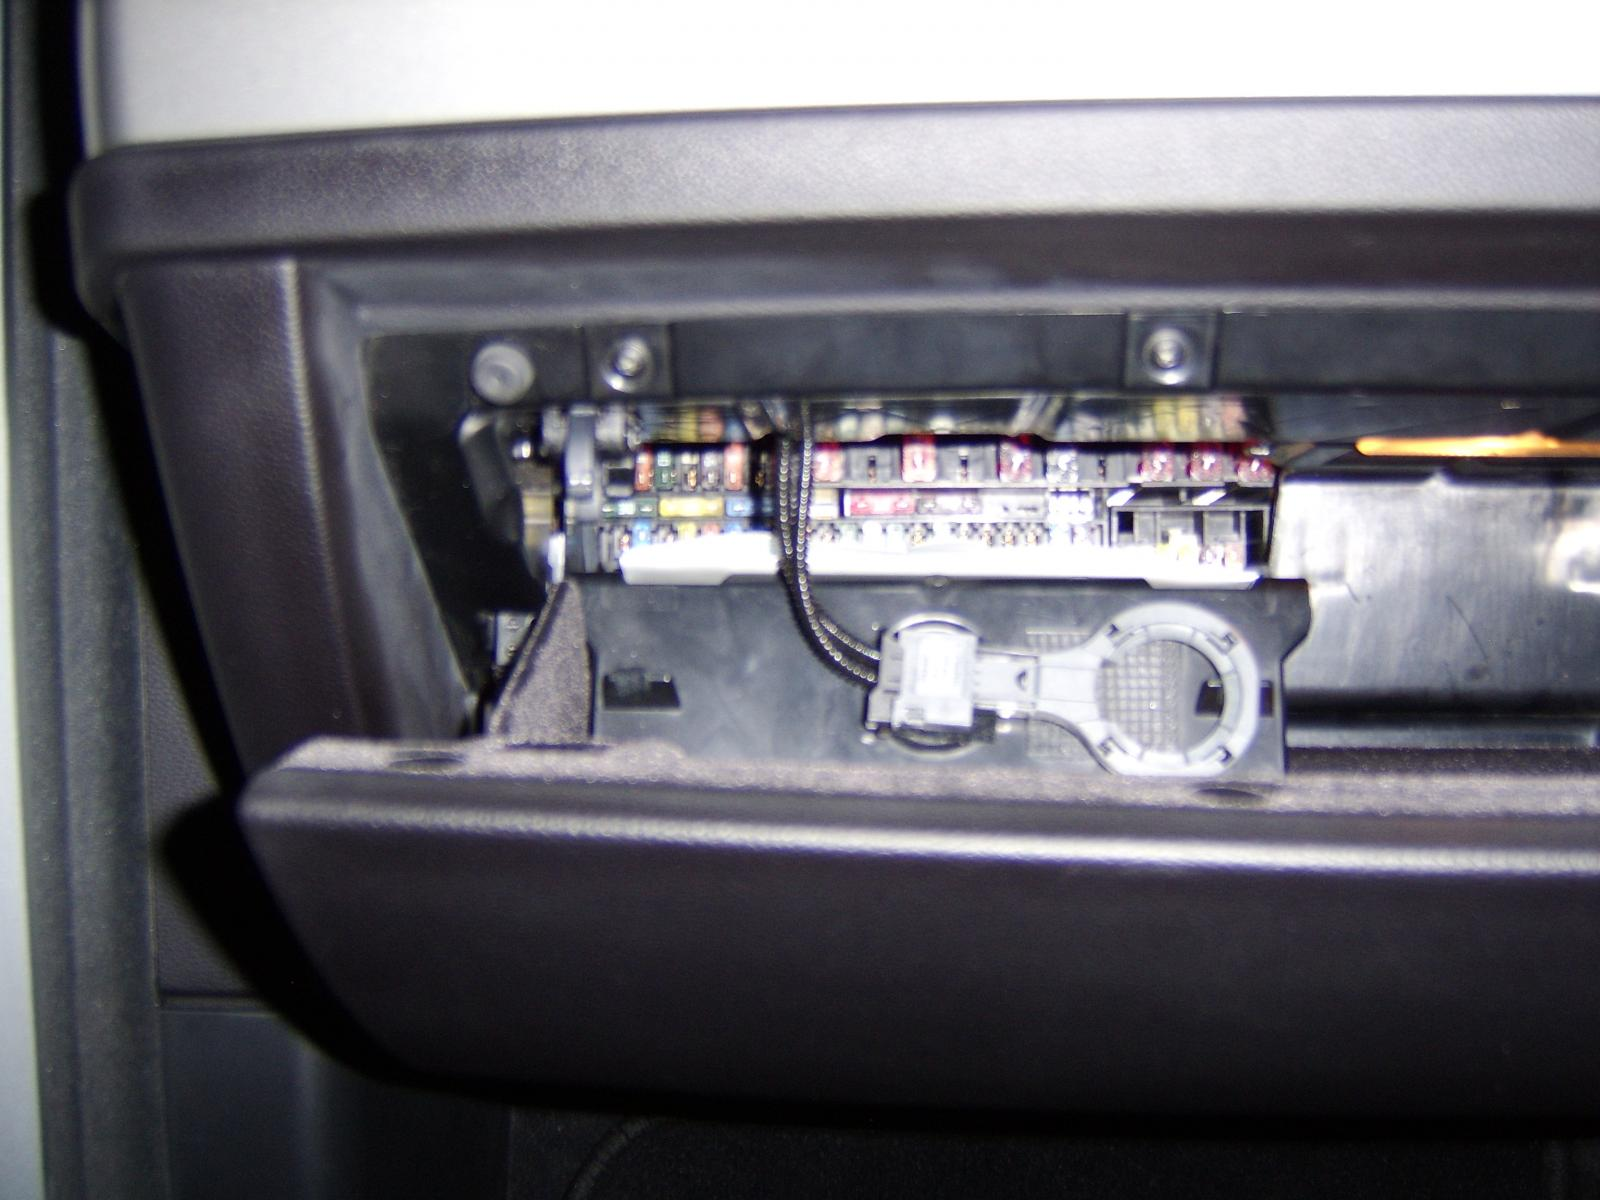 bmw x5 fuse box location - wiring diagrams schematics x5 fuse box  schoonenberg auto's